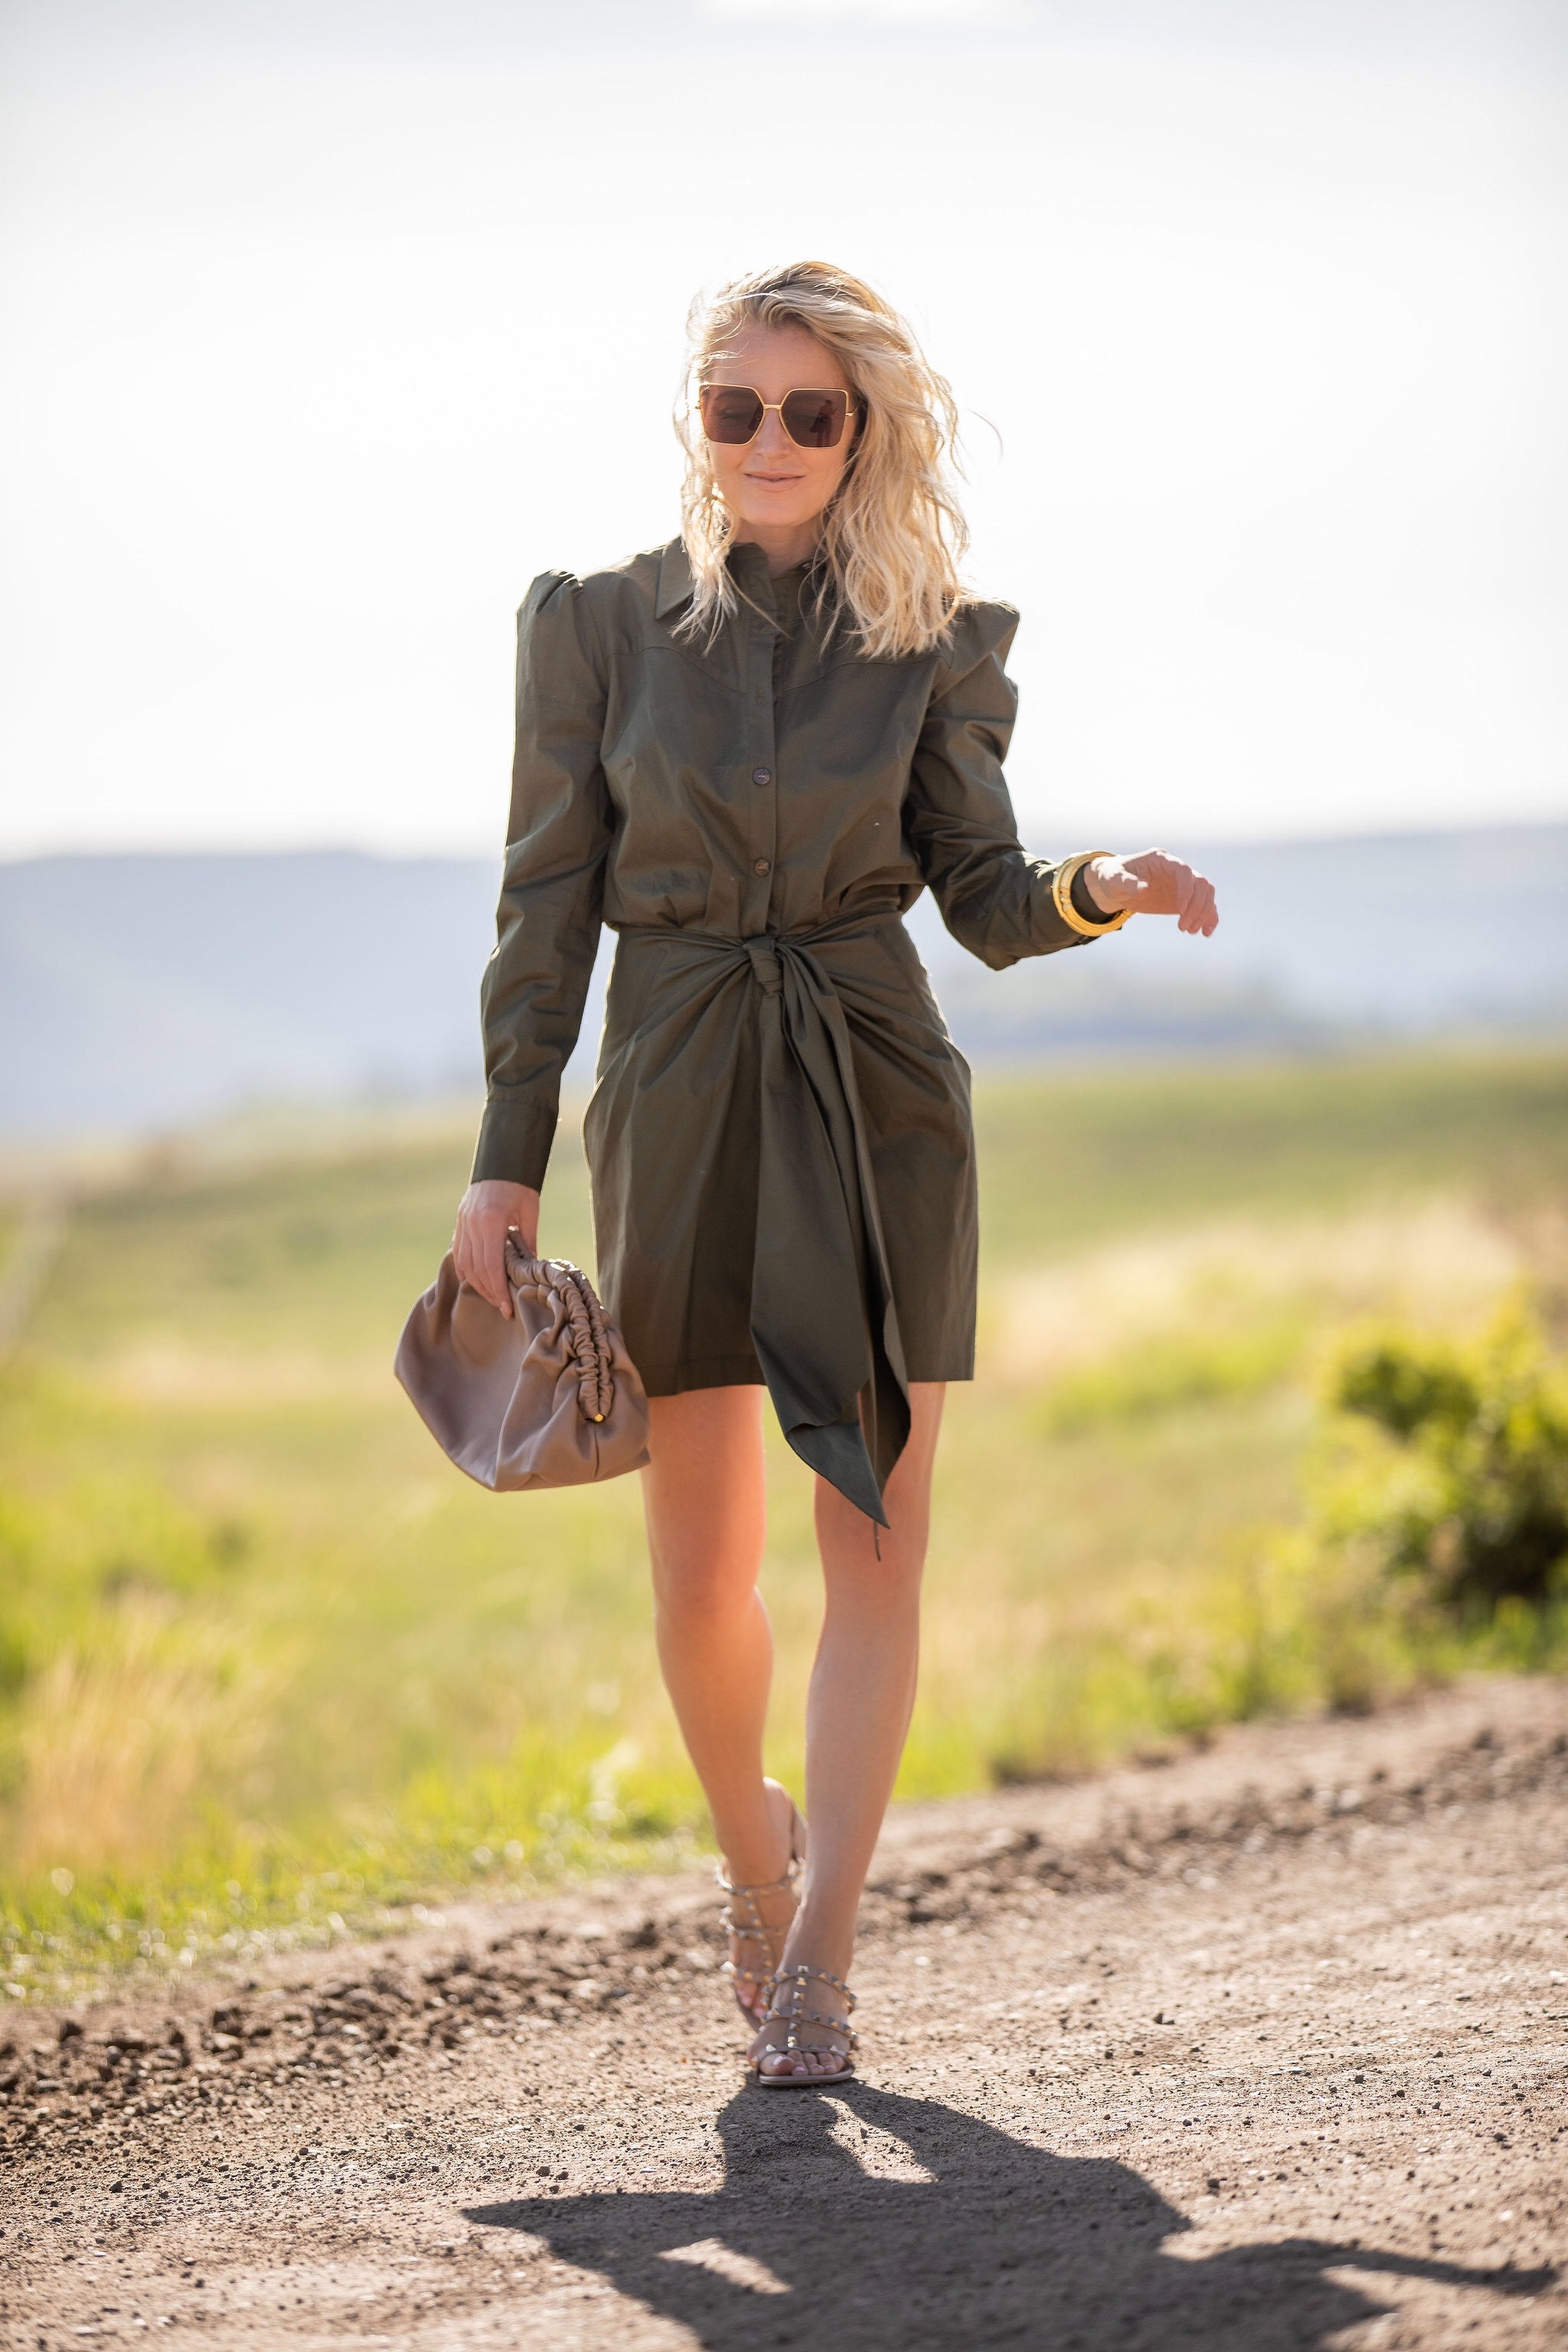 Puff Sleeve Dress, Fashion blogger Erin Busbee of Busbee Style wearing a green puff sleeve tie front dress by Petersyn with Valentino sandals, Mansur Gavriel pouch bag, Julie Vos bracelets, and Aligheri necklaces in Telluride, Colorado